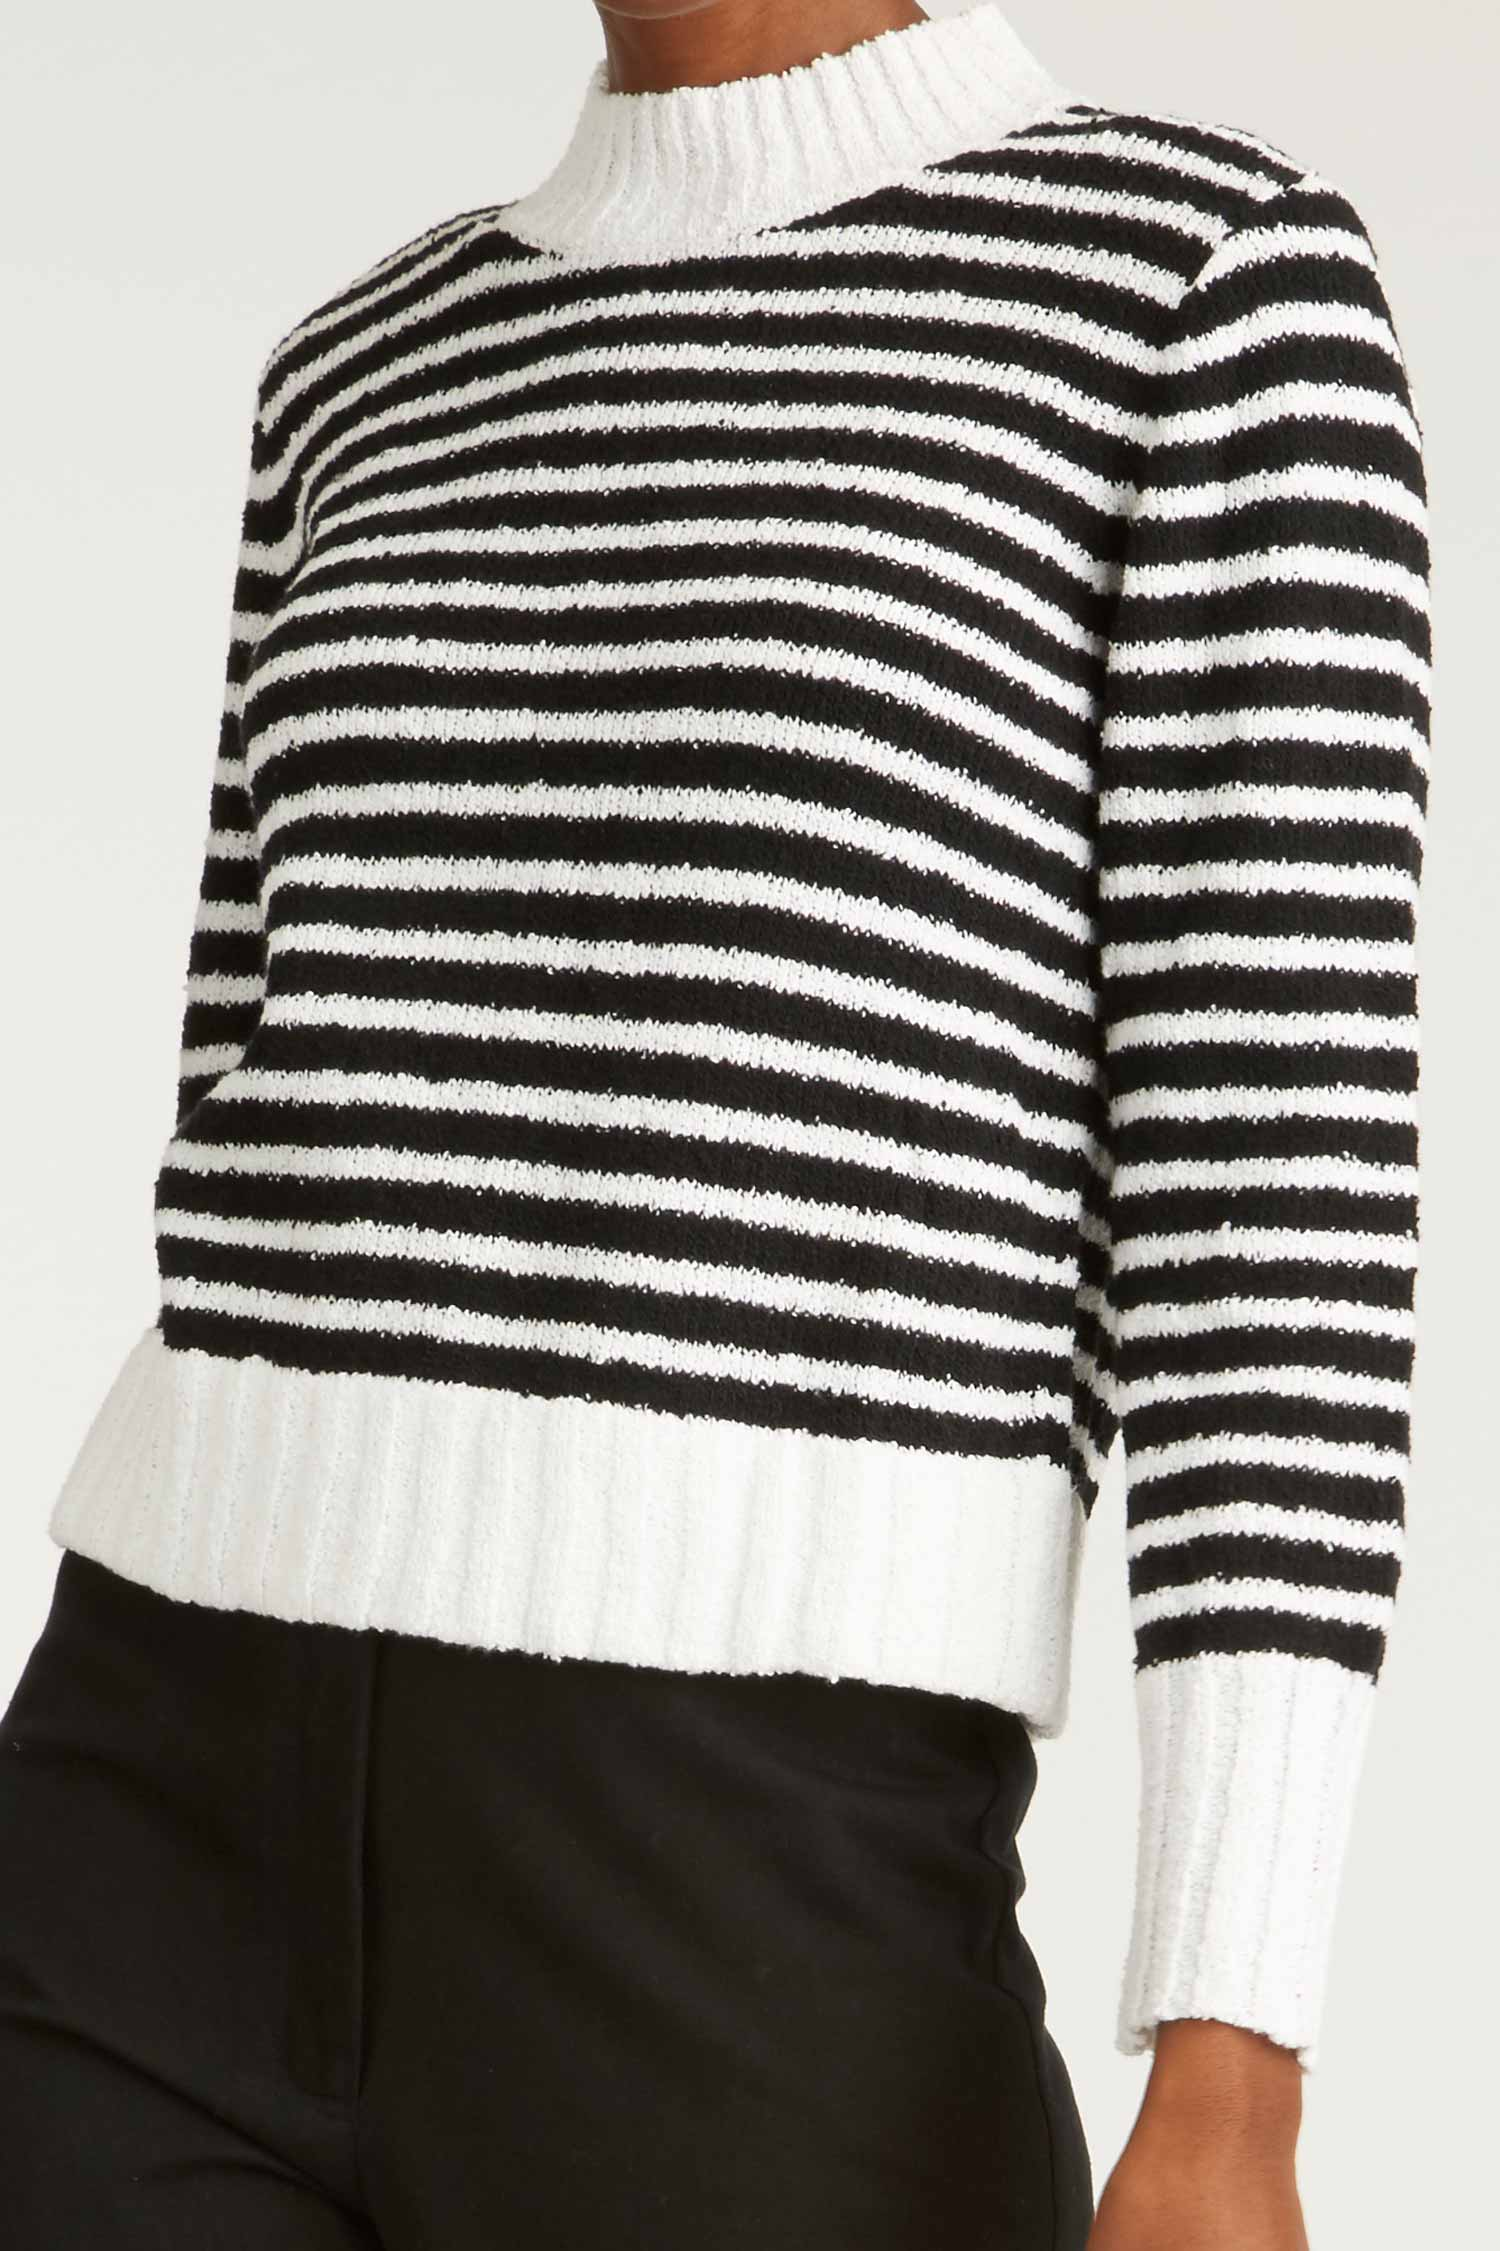 2aa213e47 ... Boucle Pullover | Indigenous Womens Organic Cotton Sweater | Black  White Stripe Pullover | Indigenous ...